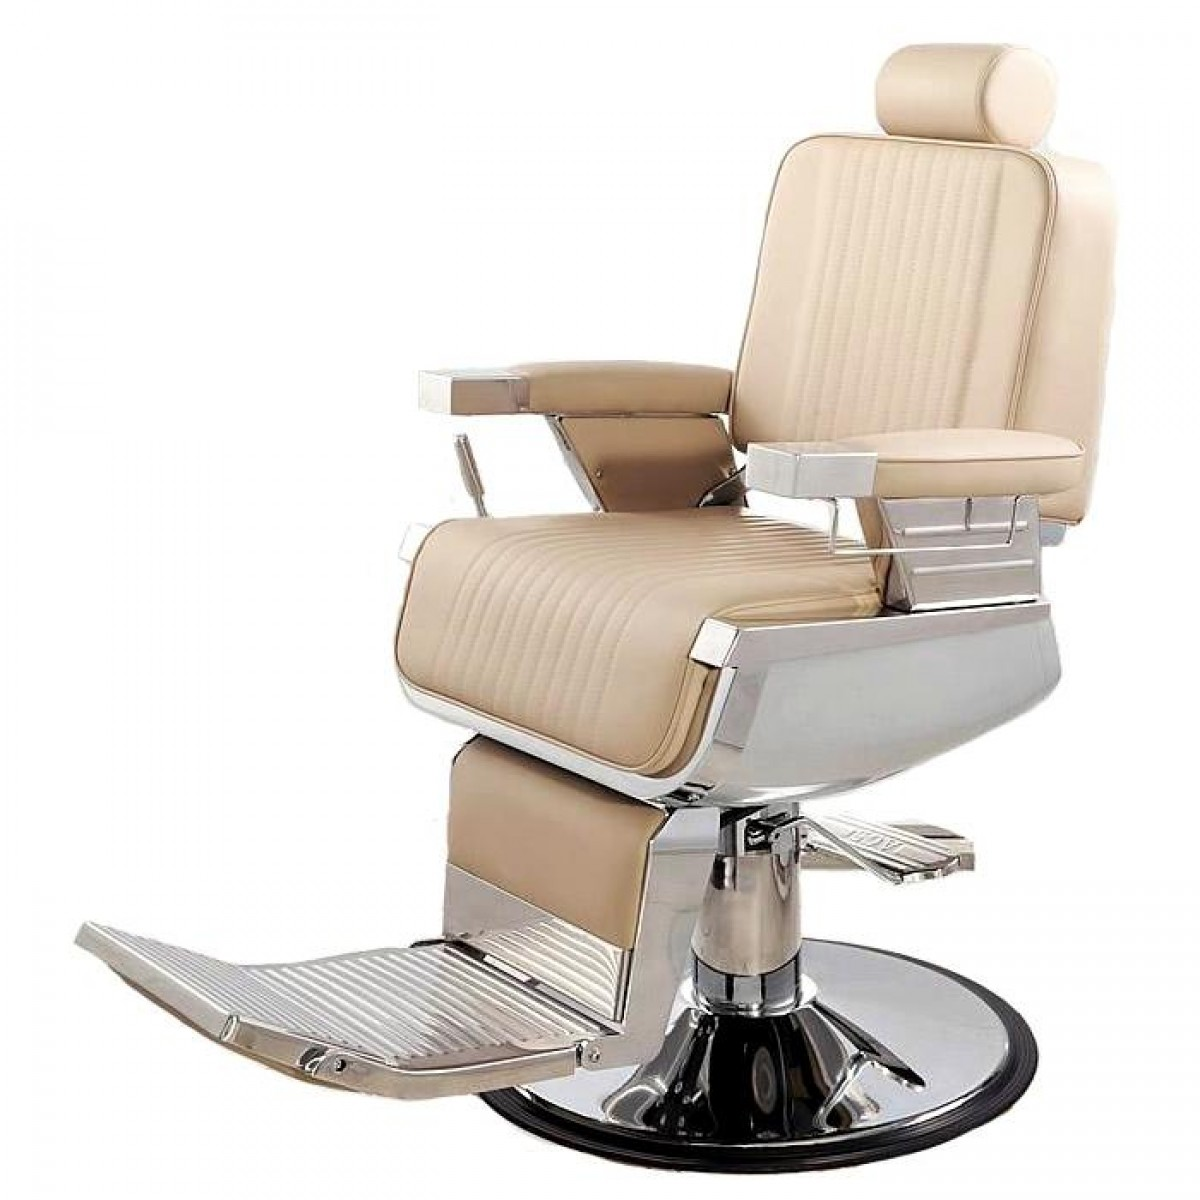 Alexander barber chair, Alexander barber shop chairs